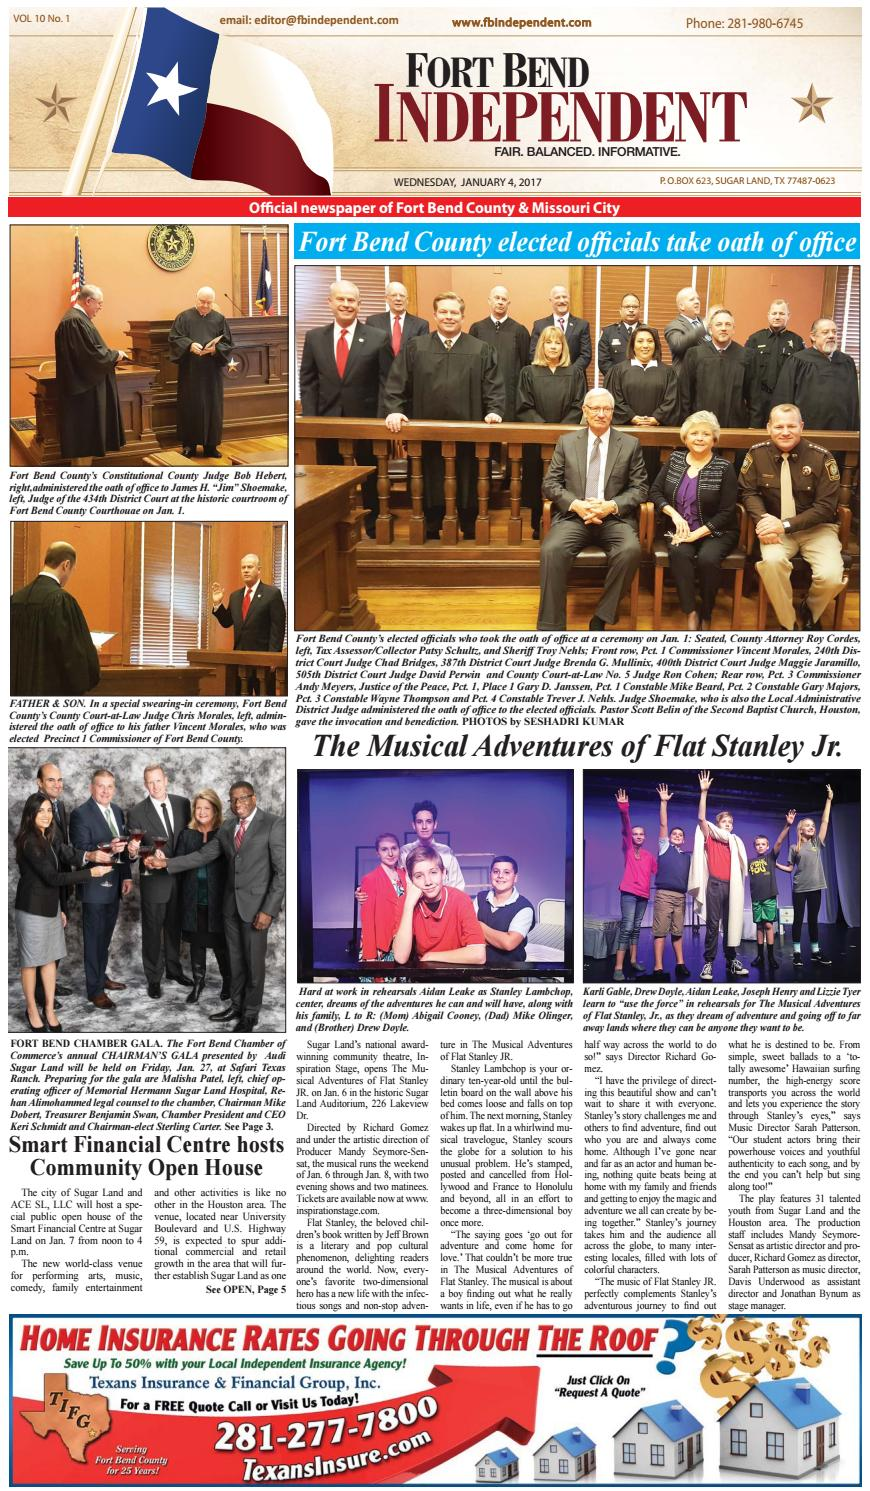 Fort Bend Independent 010417 By Fort Bend Independent Issuu